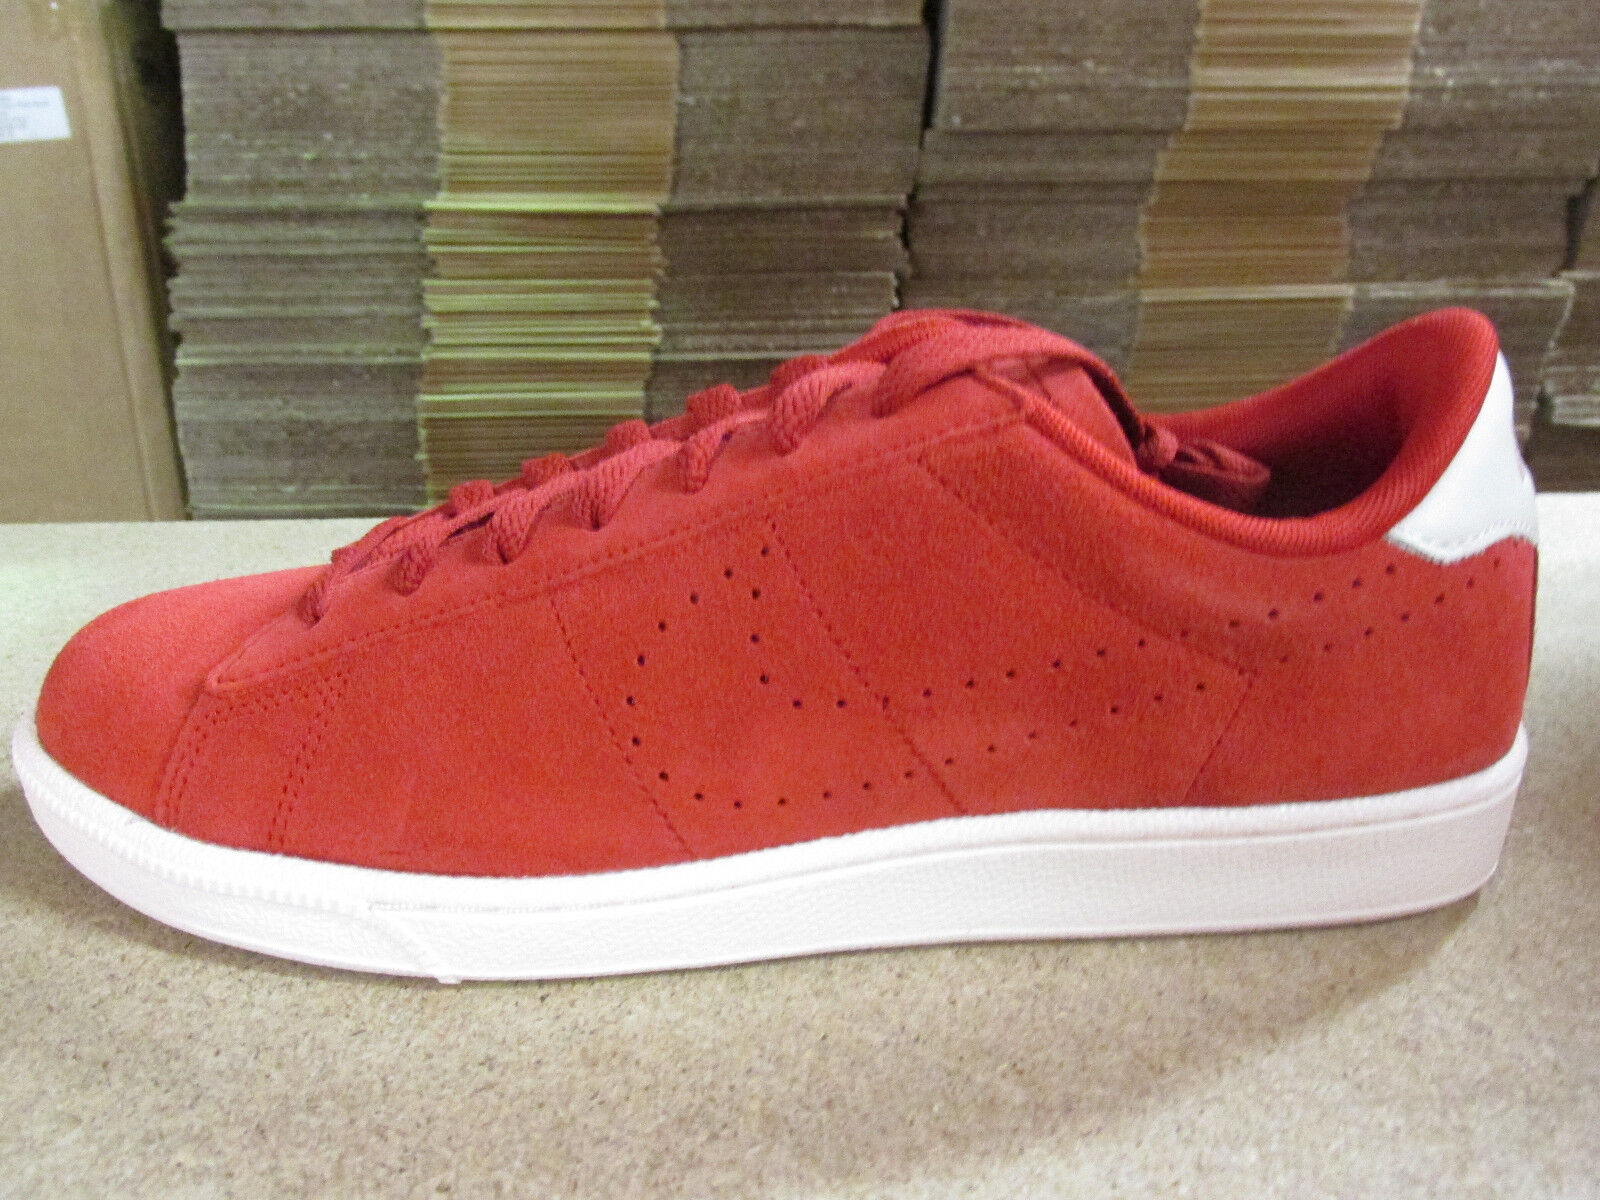 Nike Tennis Classic CS Suede Sneakers mens Trainers 829351 600 Sneakers Suede Schuhes bb6c42